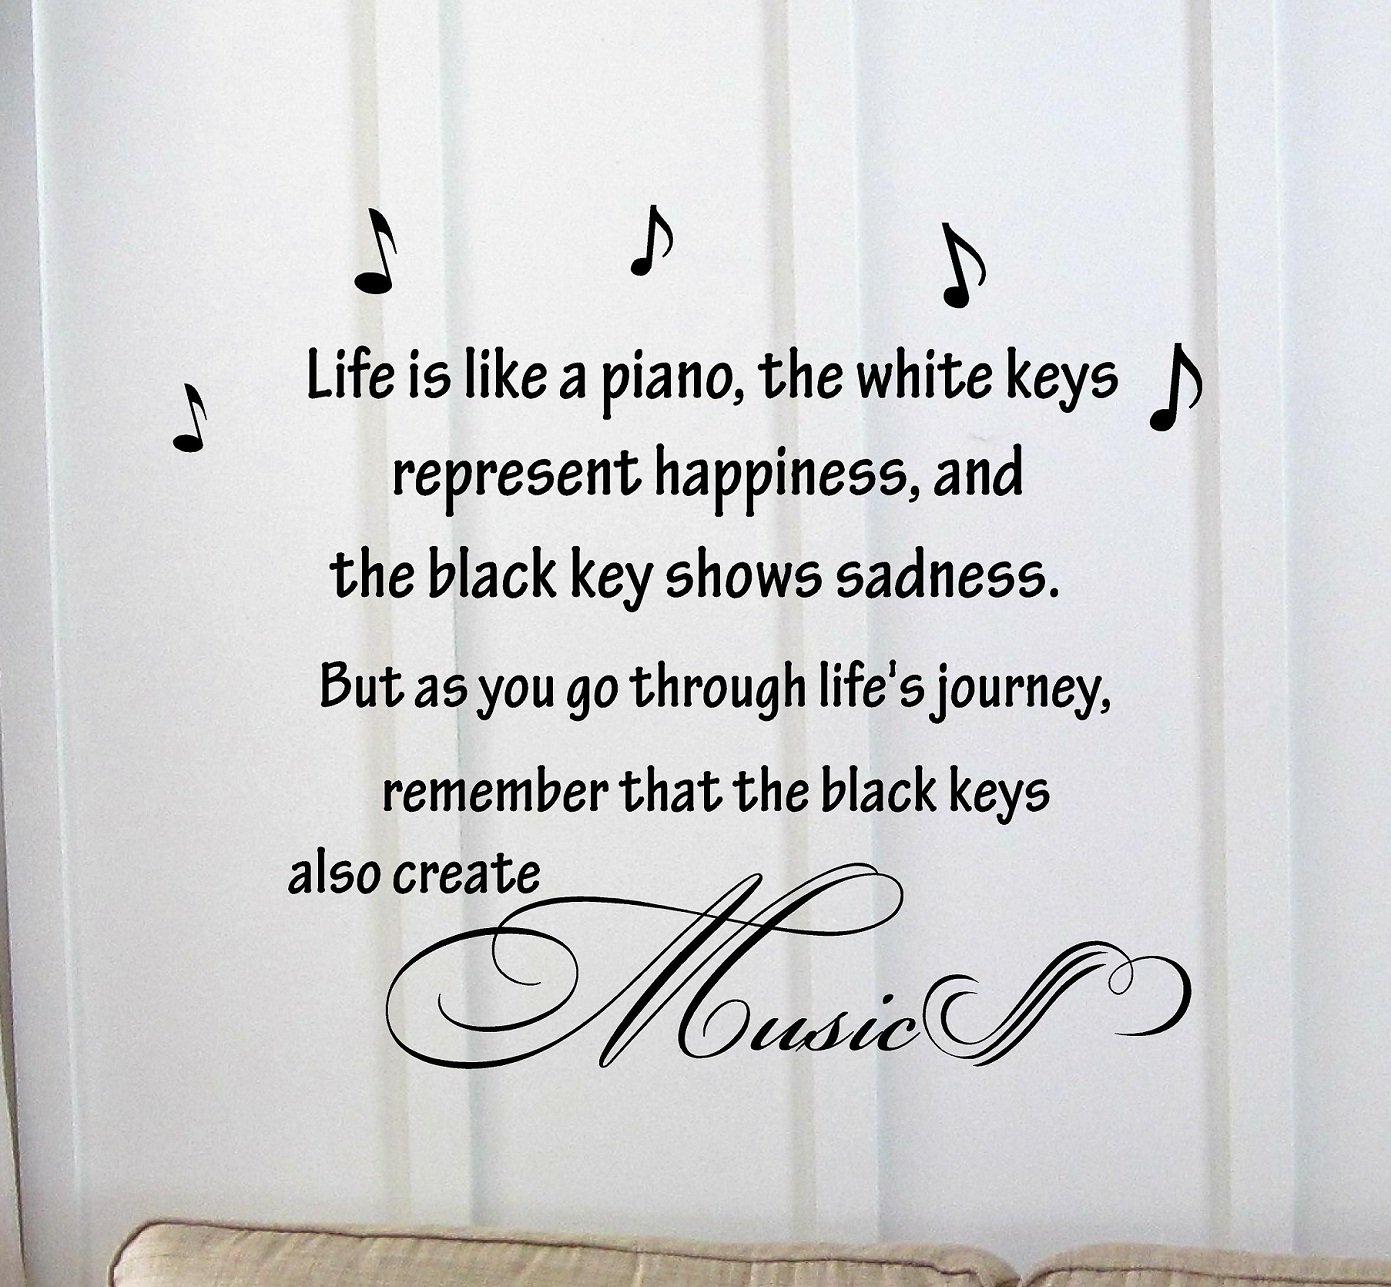 Life Is Like a Piano, the White Keys Represent Happiness, and the Black Key Shows Sadness. But As Ou Go Through Life's Jouney, Remember That the Black Keys Also Create Music. Vinyl Car Sticker Symbol Silhouette Keypad Track Pad Decal Laptop Skin Ipad Macb